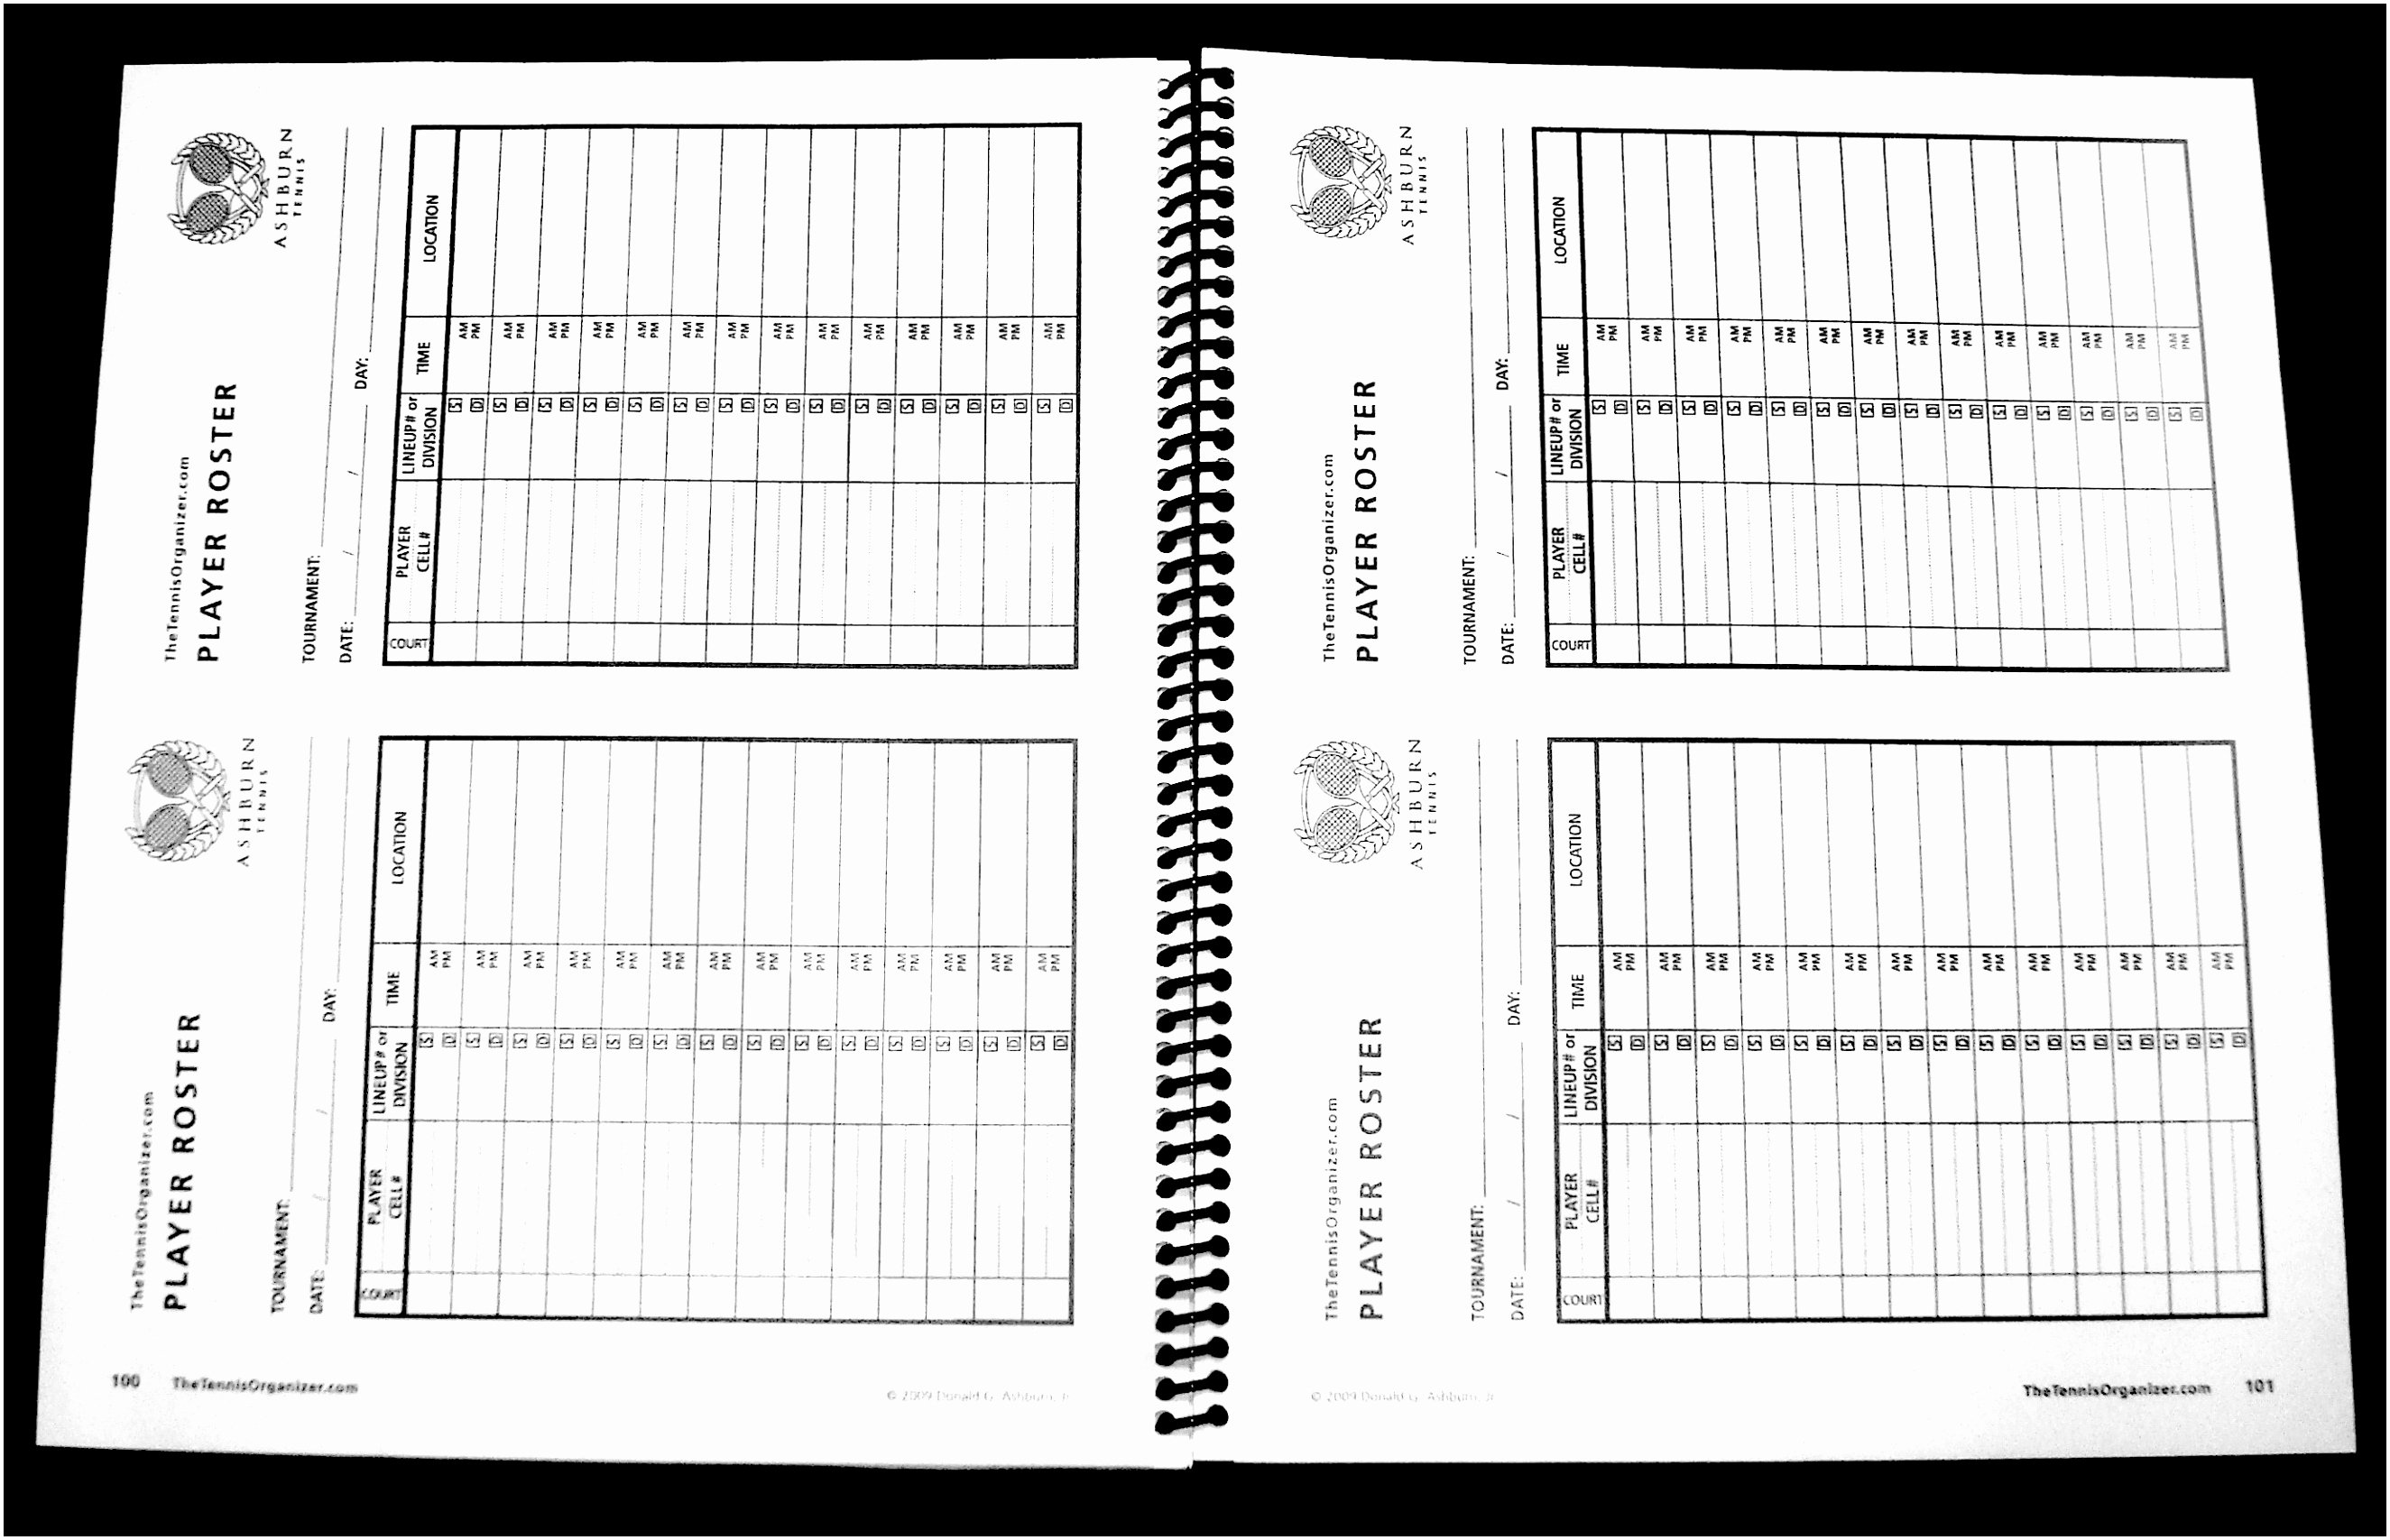 Football Depth Chart Template Excel format Lovely 5 Printable Football Depth Chart Template Yaouu